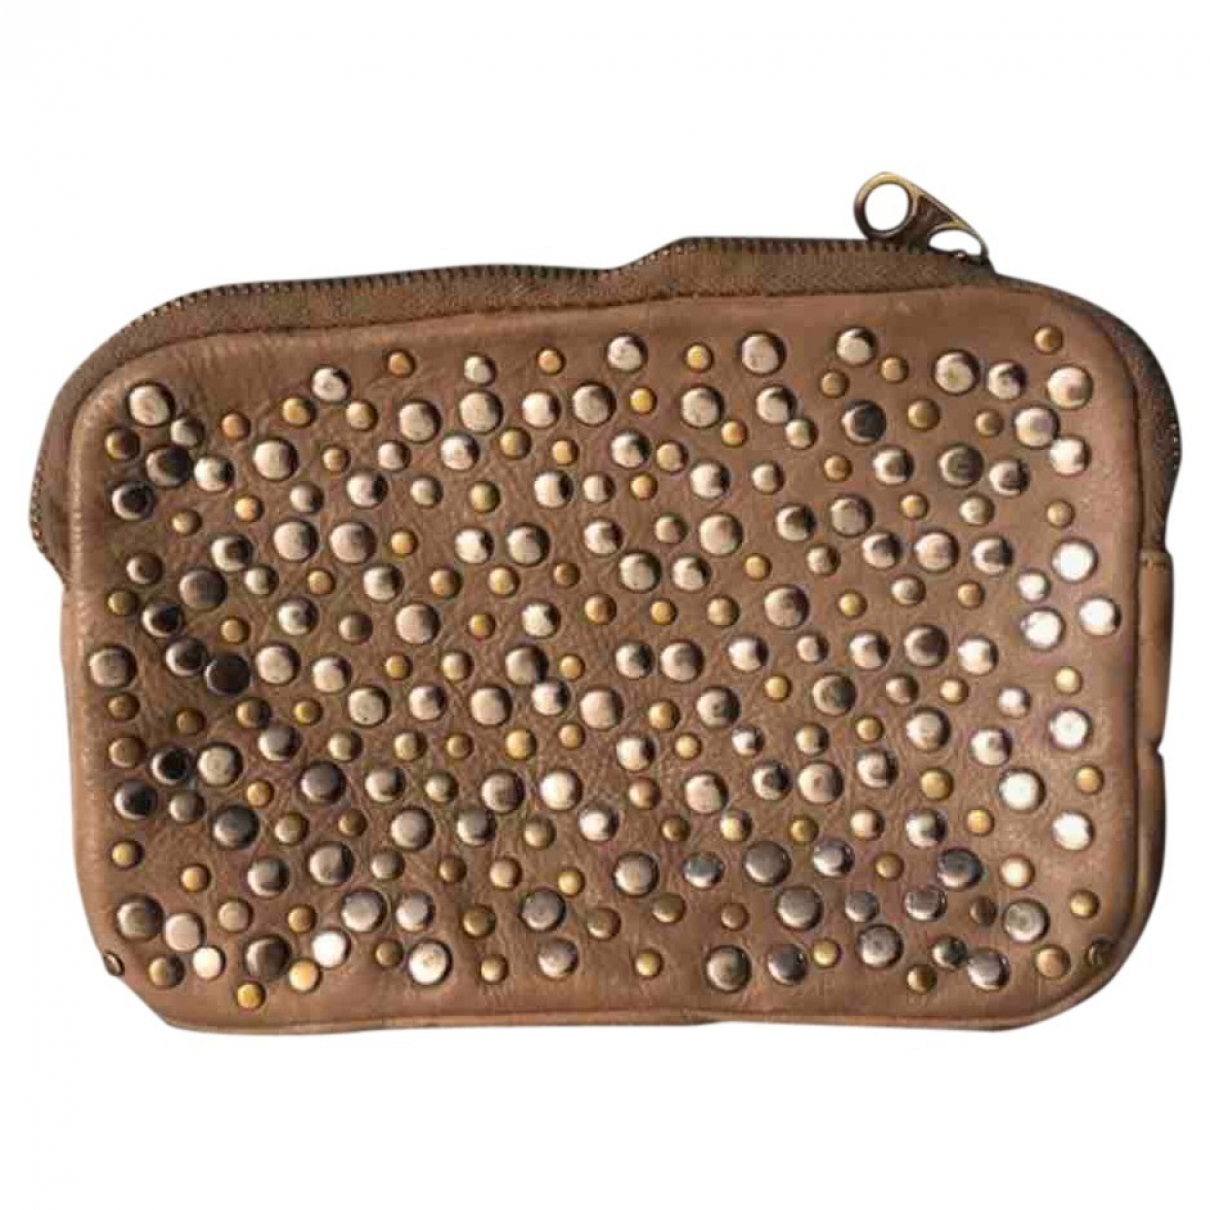 Zadig & Voltaire \N Beige Leather Clutch bag for Women \N